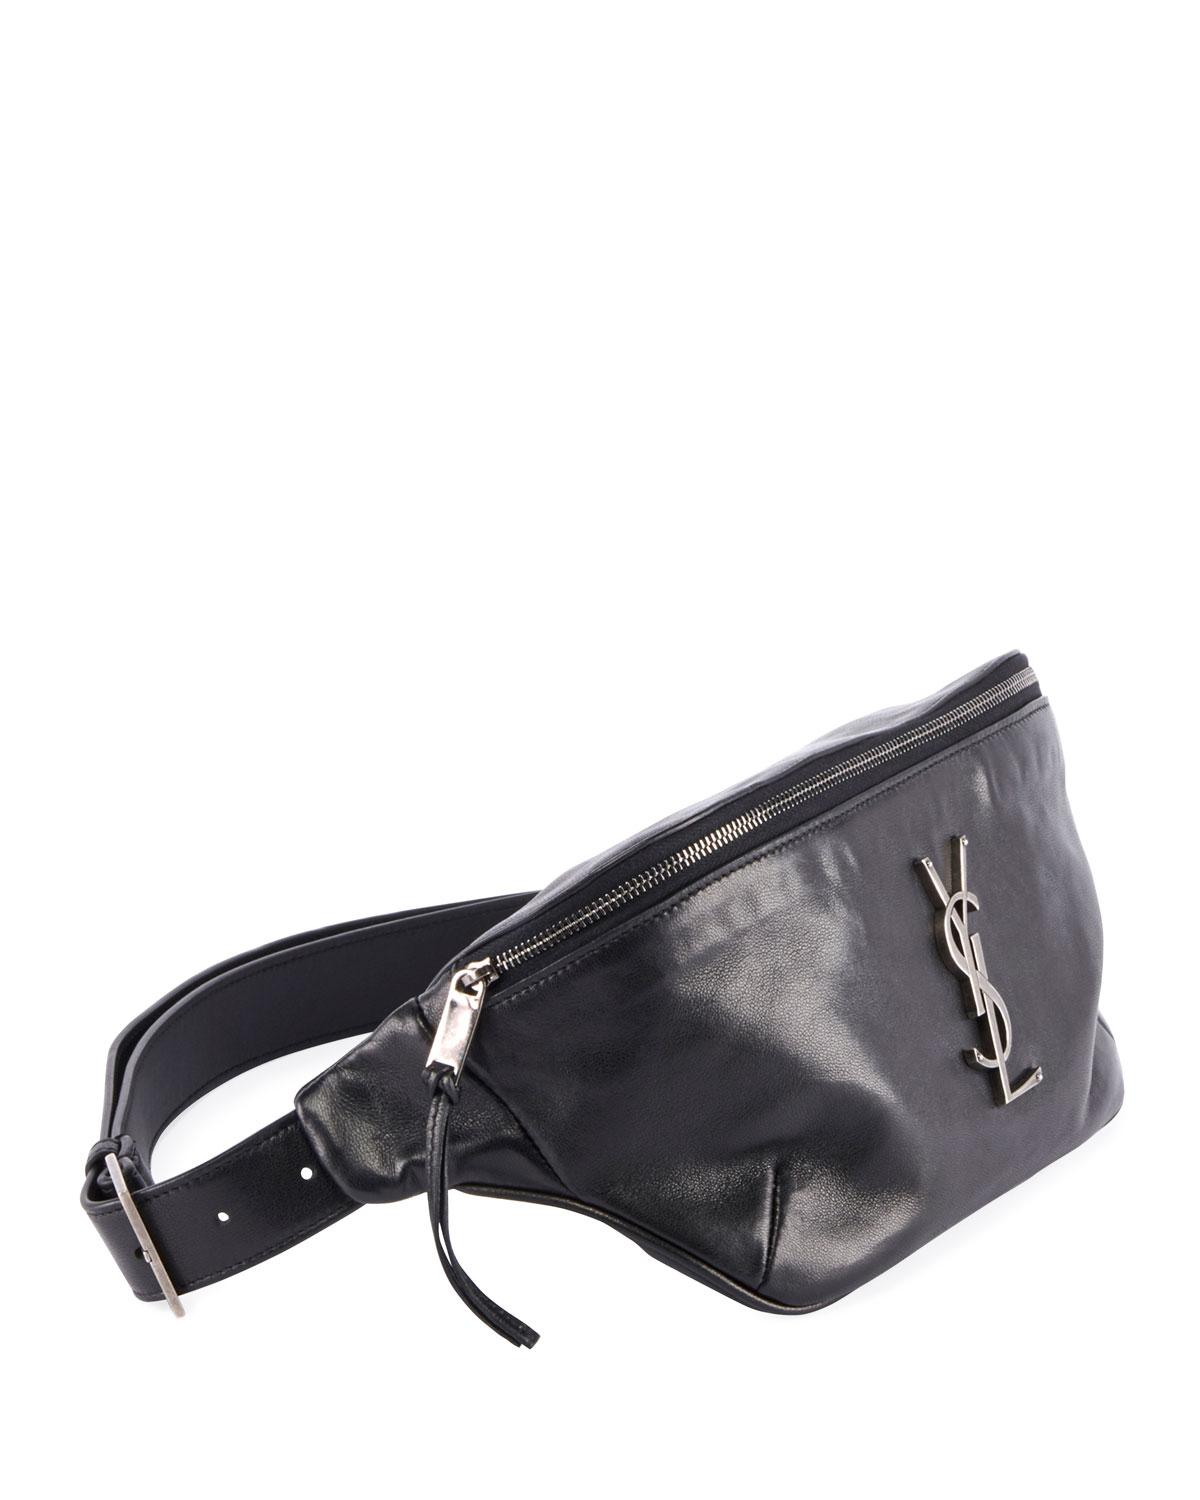 f01405dd11 Lyst - Saint Laurent Ysl Monogram Curved Zip-top Belt Bag in Black